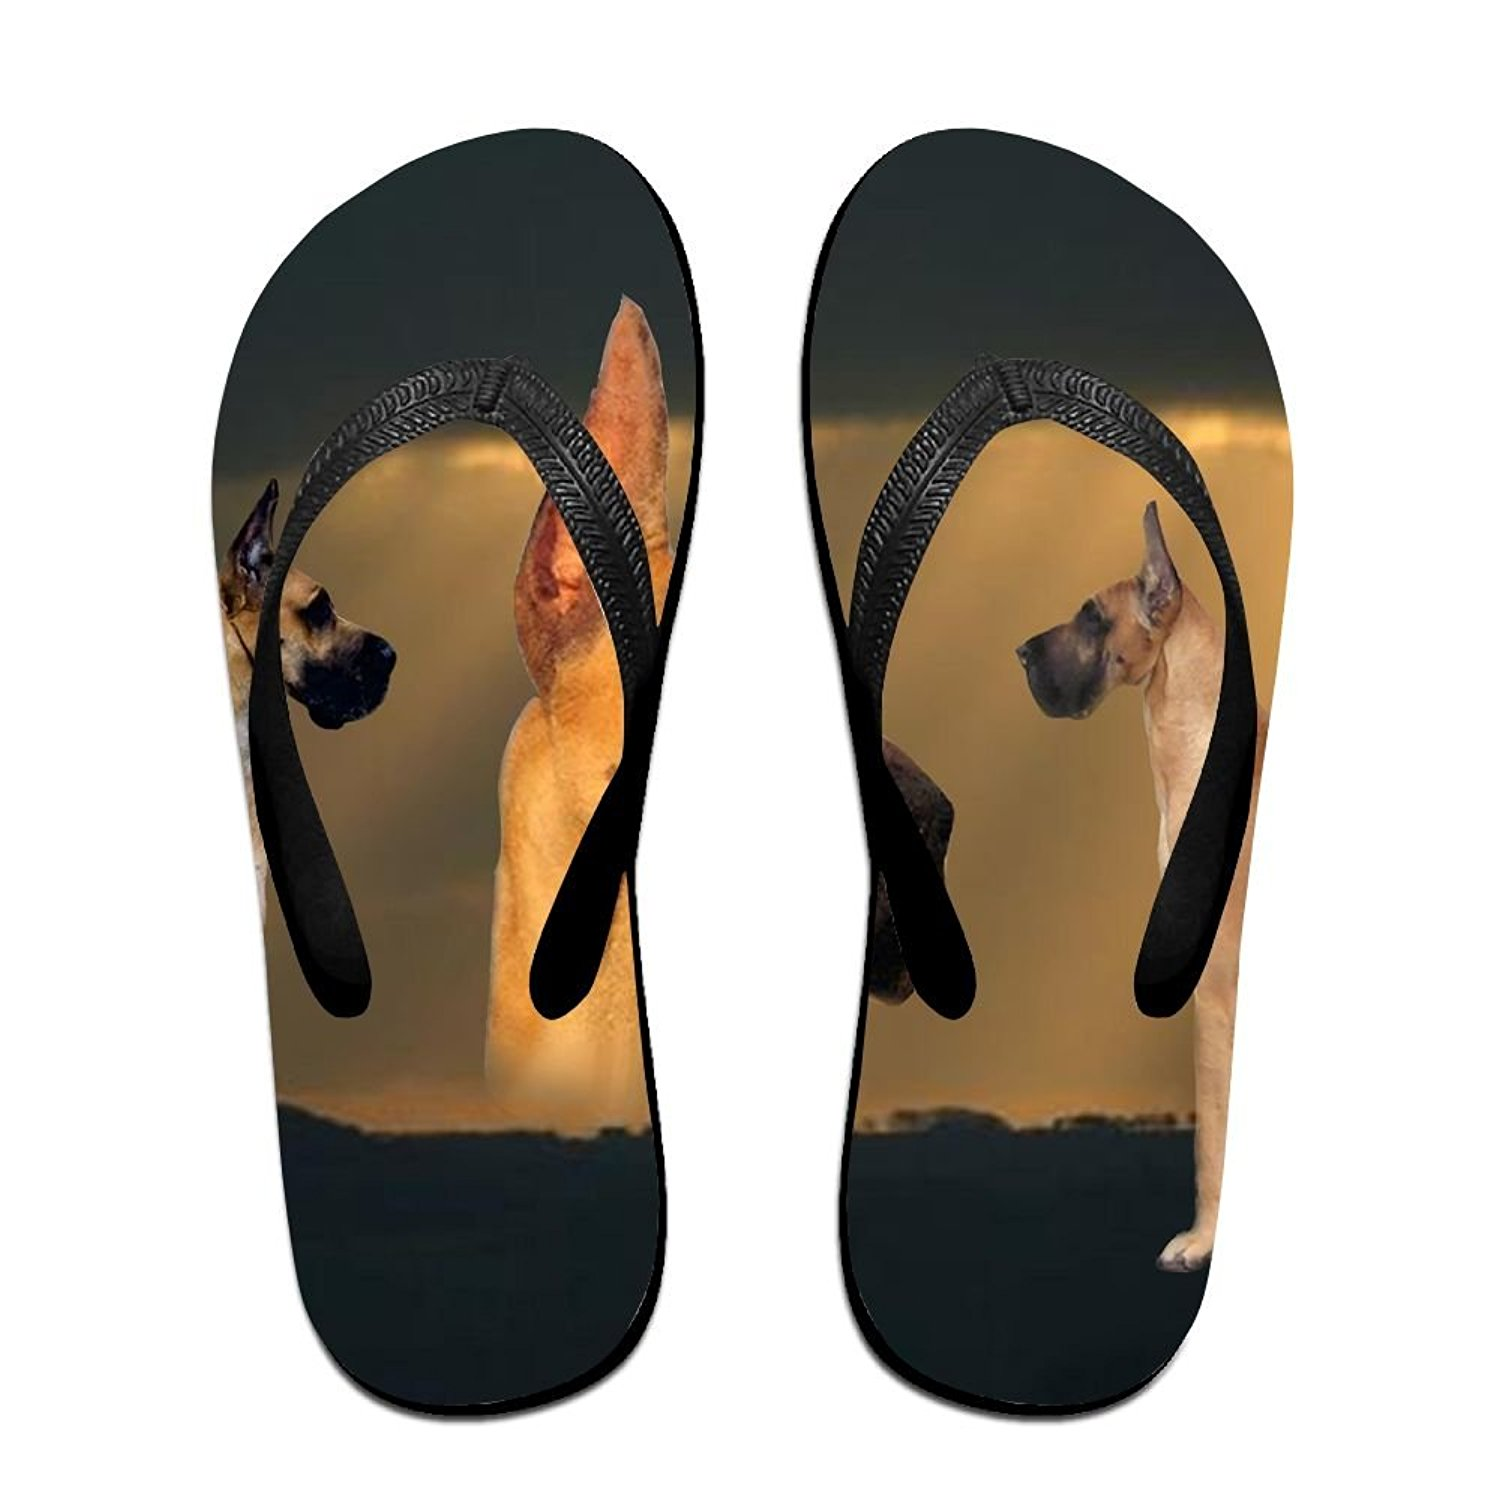 Couple Flip Flops Reindeer Print Chic Sandals Slipper Rubber Non-Slip Spa Thong Slippers